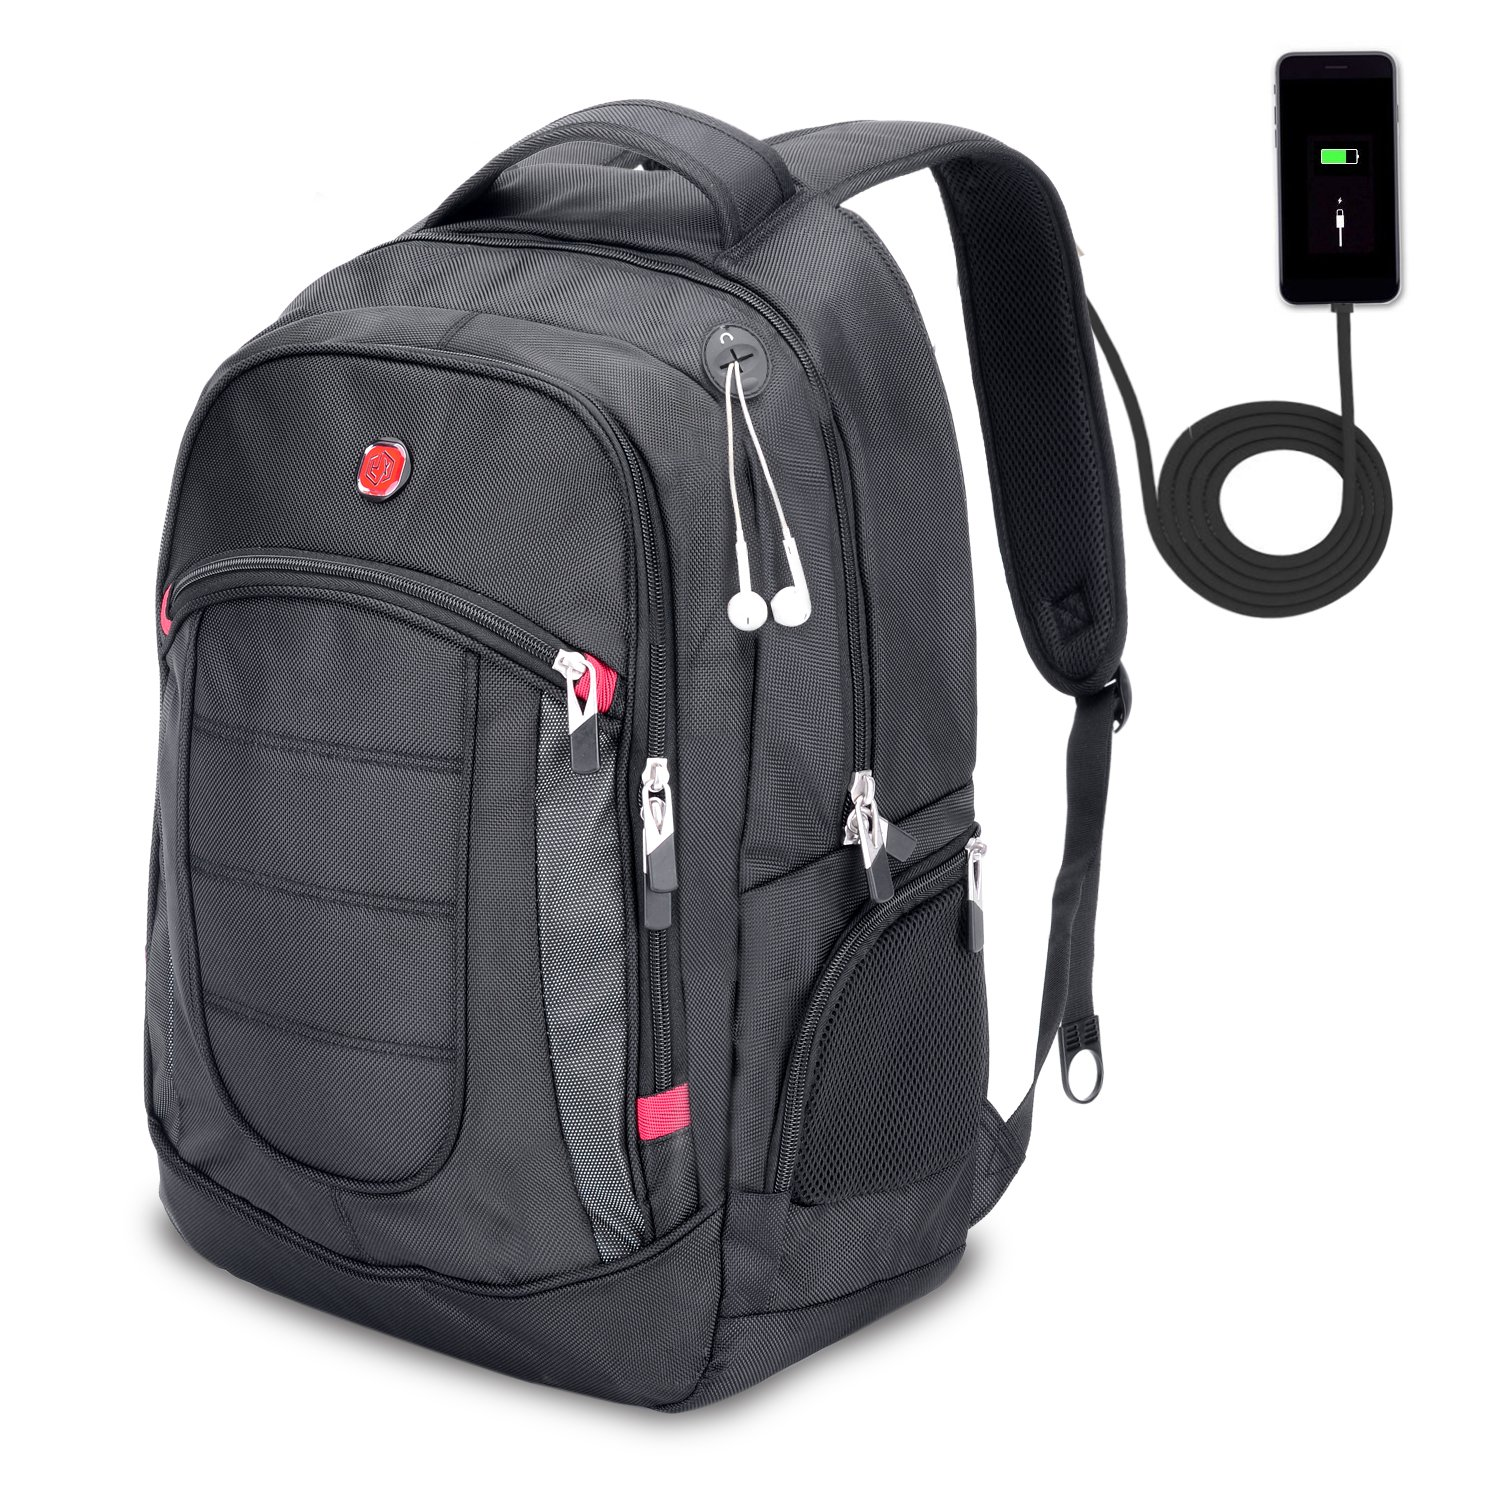 50e76f8a25ba9 XY Life Laptop Notebook Rucksack Daypack Schulrucksack Backpack  Multifunktion